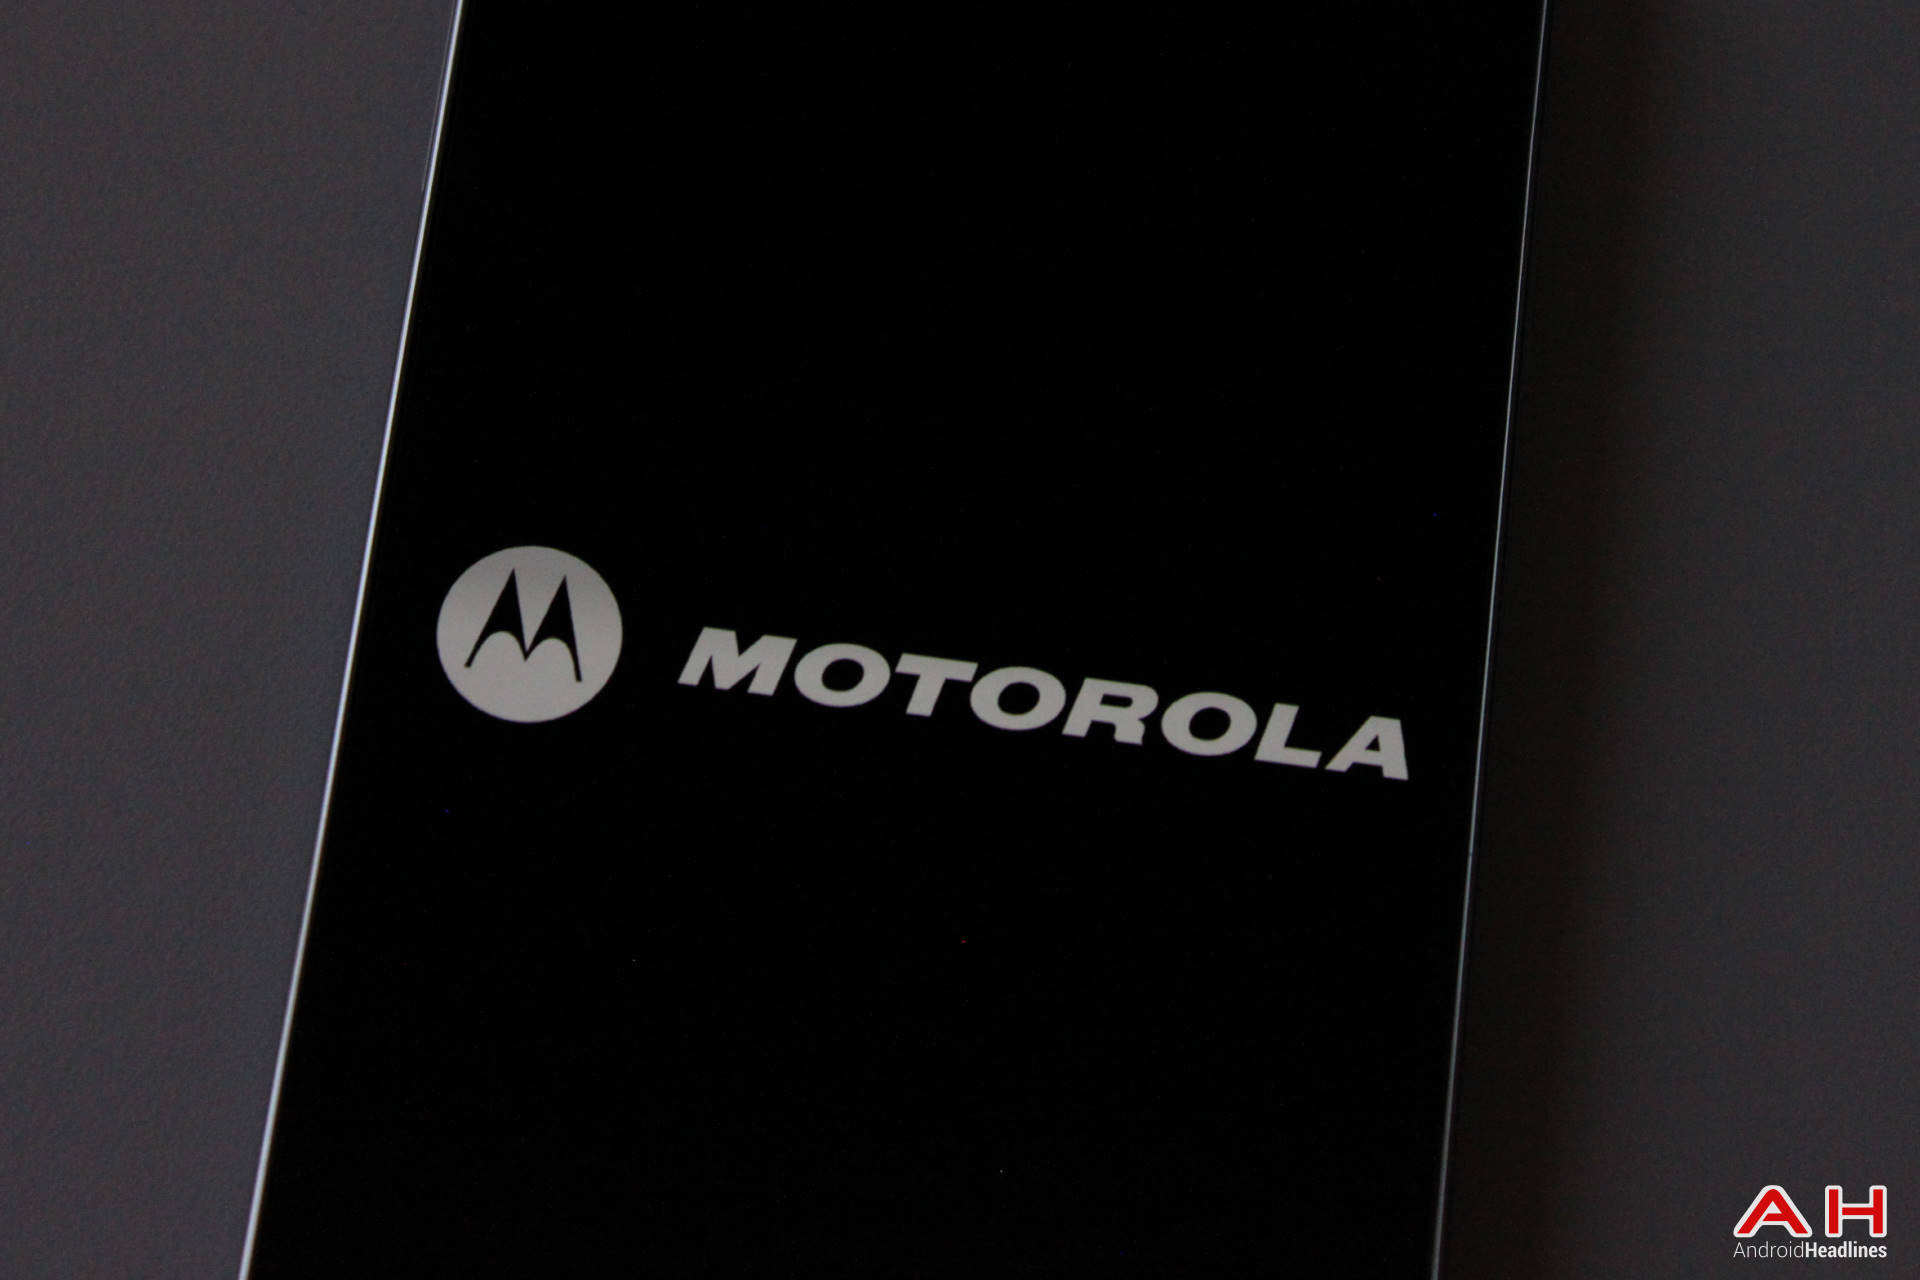 Android Headliner: Would a 5.9-inch Motorola Nexus be Too Big?